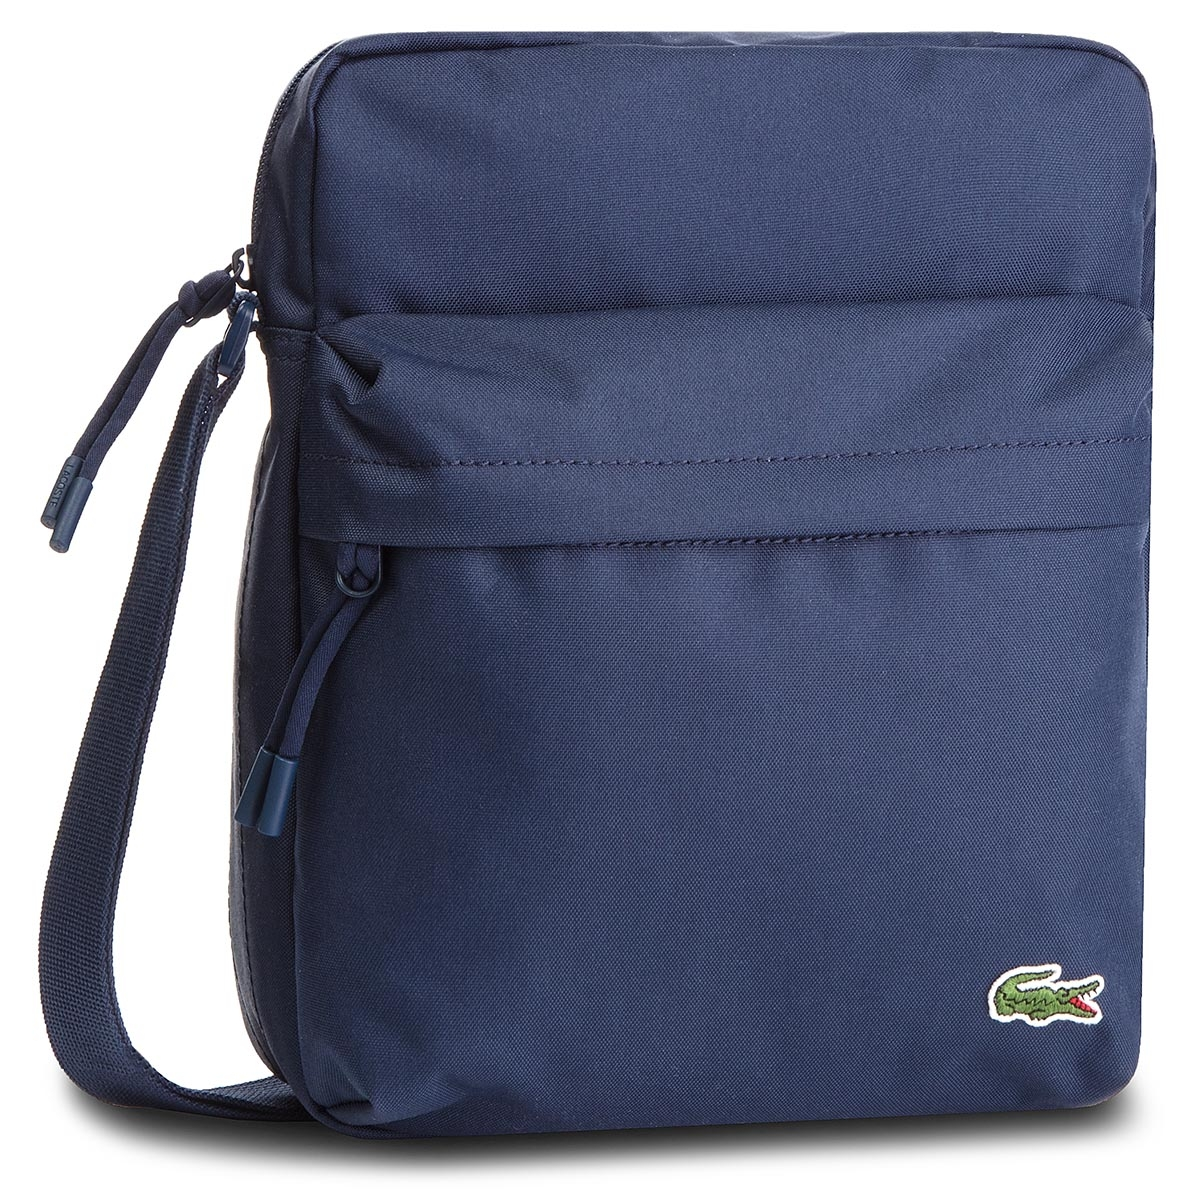 Geantă crossover LACOSTE - Crossover Bag NH2012NE Peacoat 992